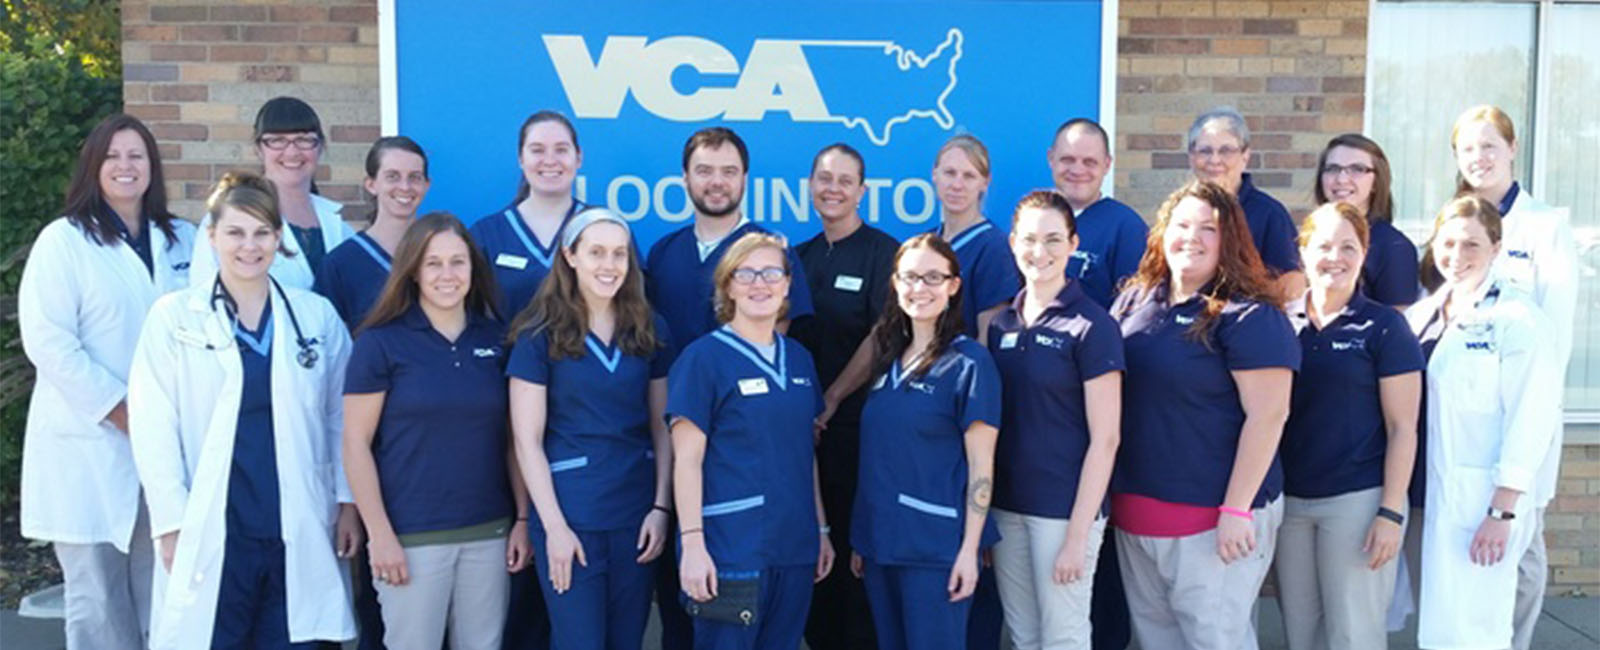 Homepage Team Picture of VCA Bloomington Animal Hospital